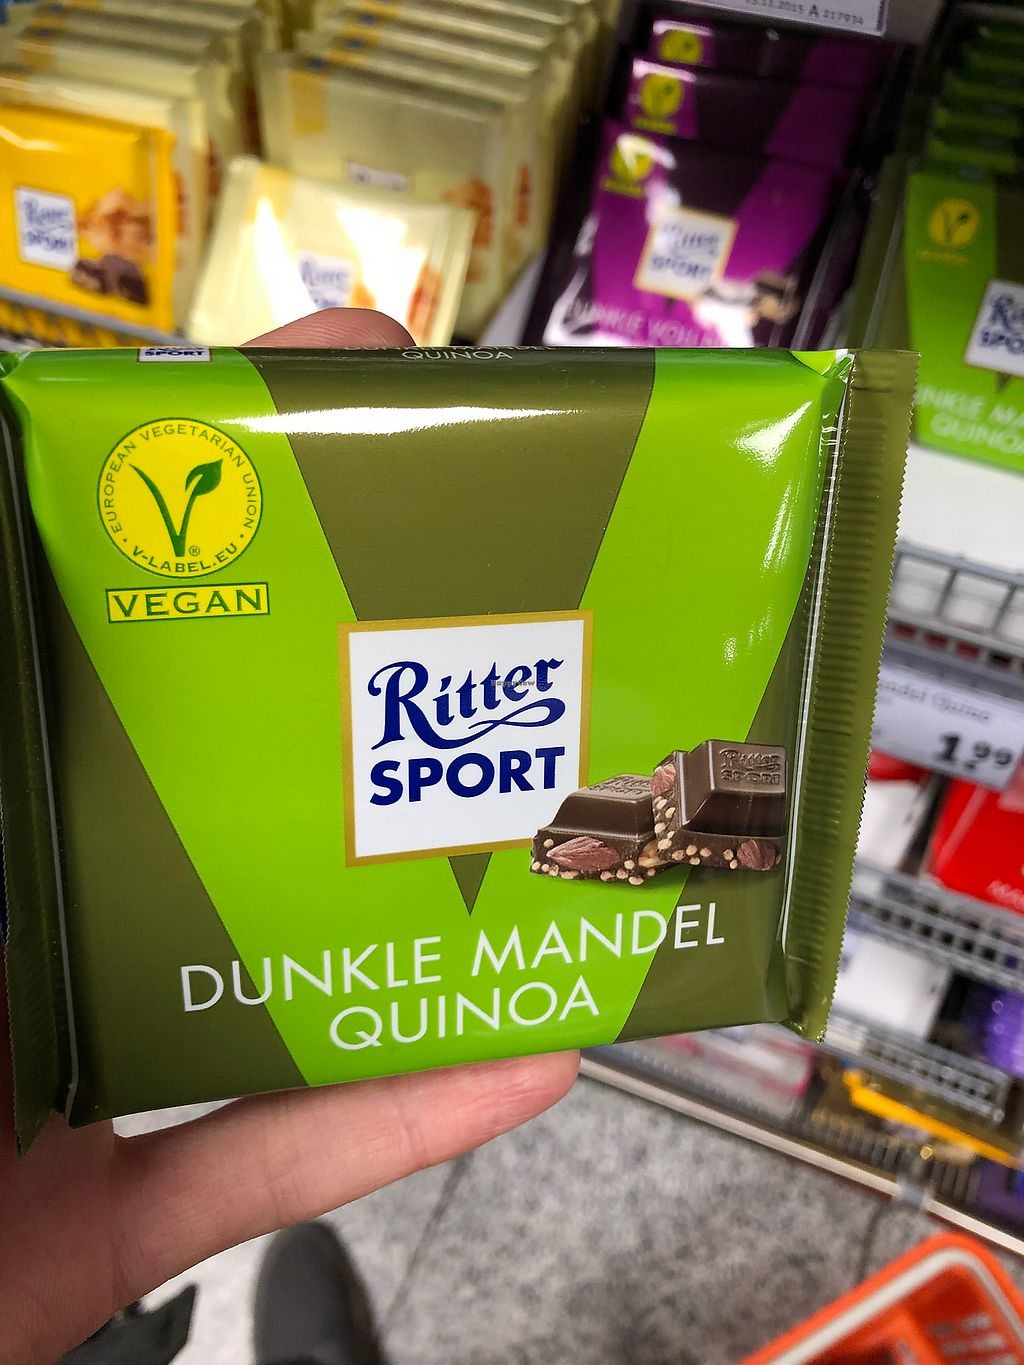 """Photo of tegut - Airport  by <a href=""""/members/profile/Knauji82"""">Knauji82</a> <br/>New vegan ritter sport! <br/> November 19, 2017  - <a href='/contact/abuse/image/102484/327028'>Report</a>"""